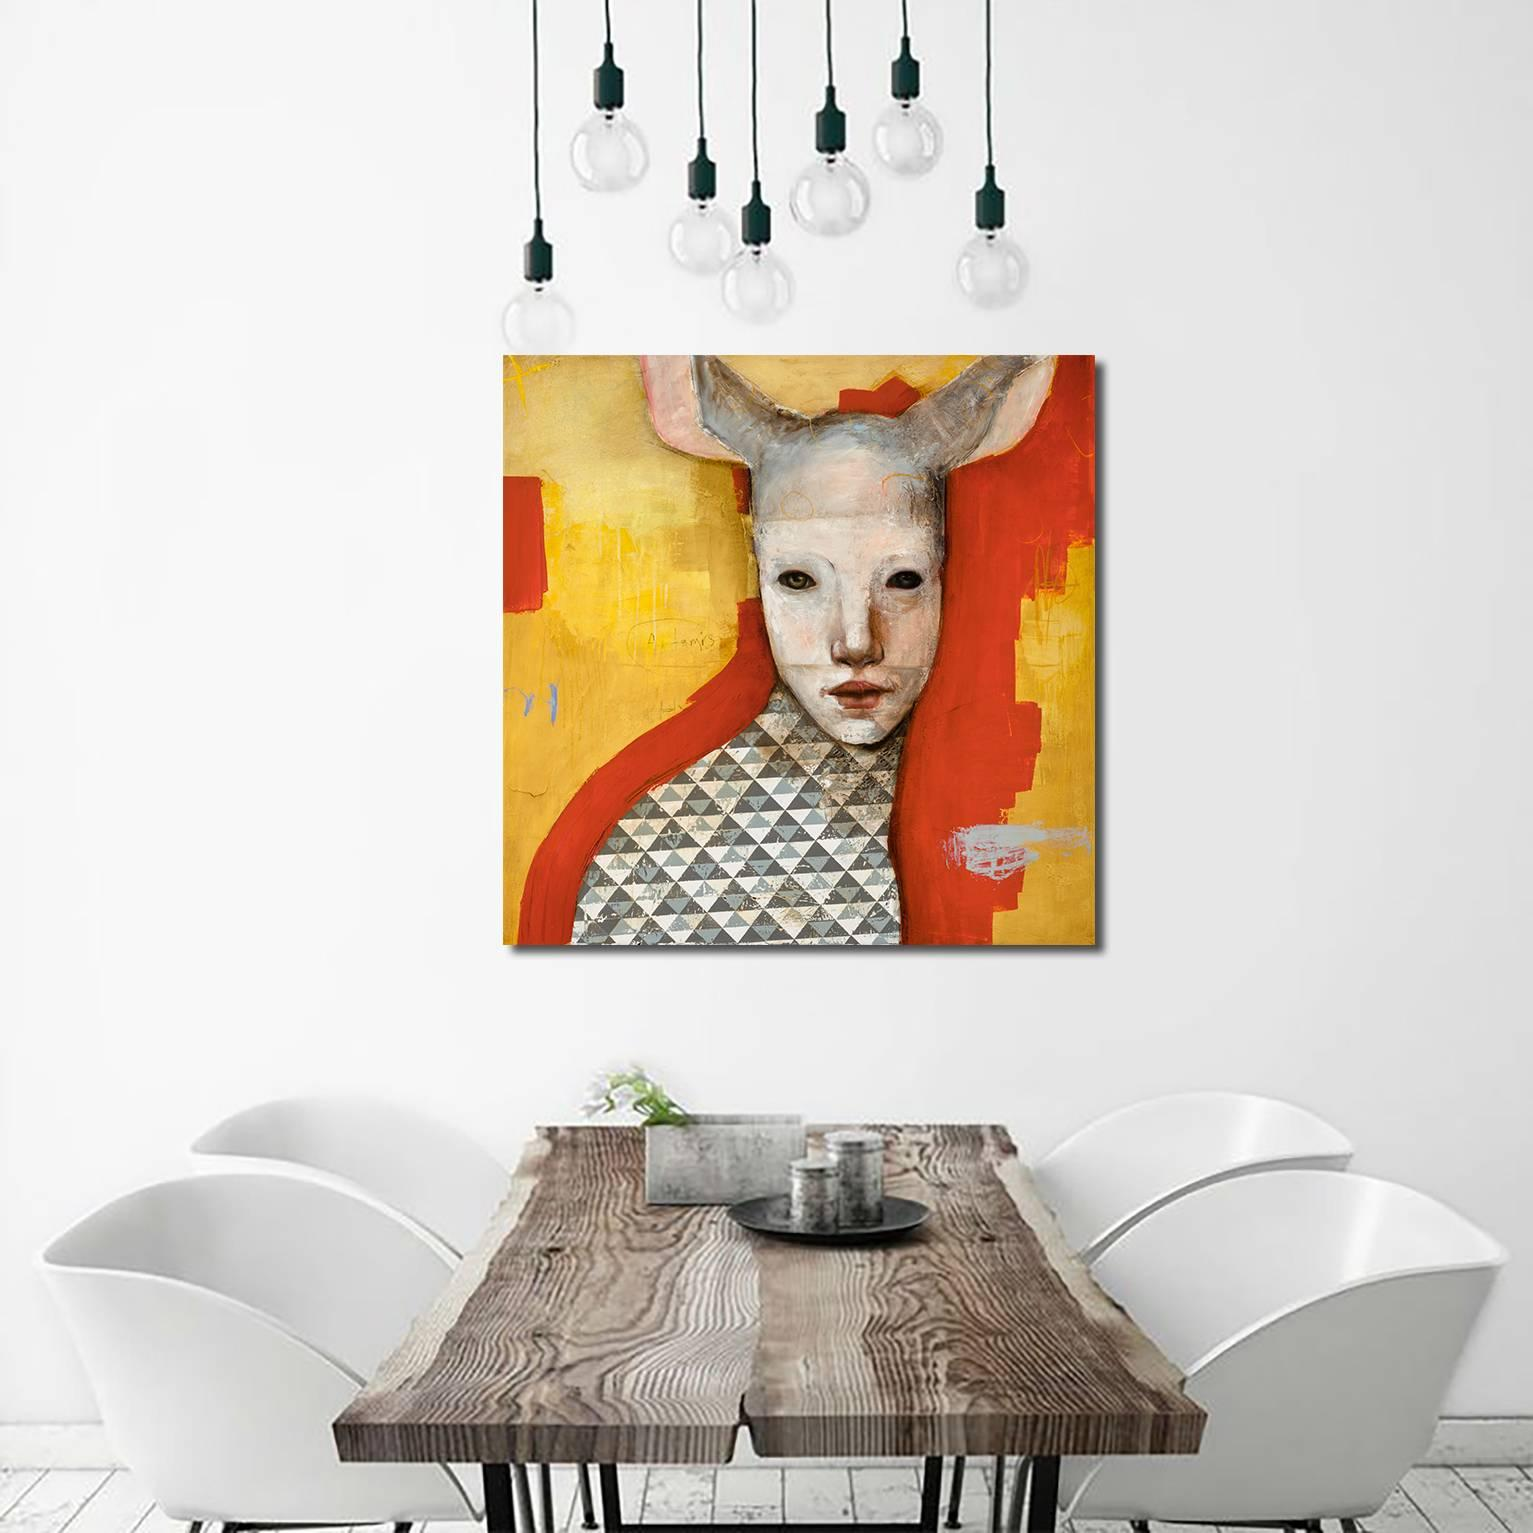 Artemis, Oil on canvas, abstract figurative painting, yellow and orange